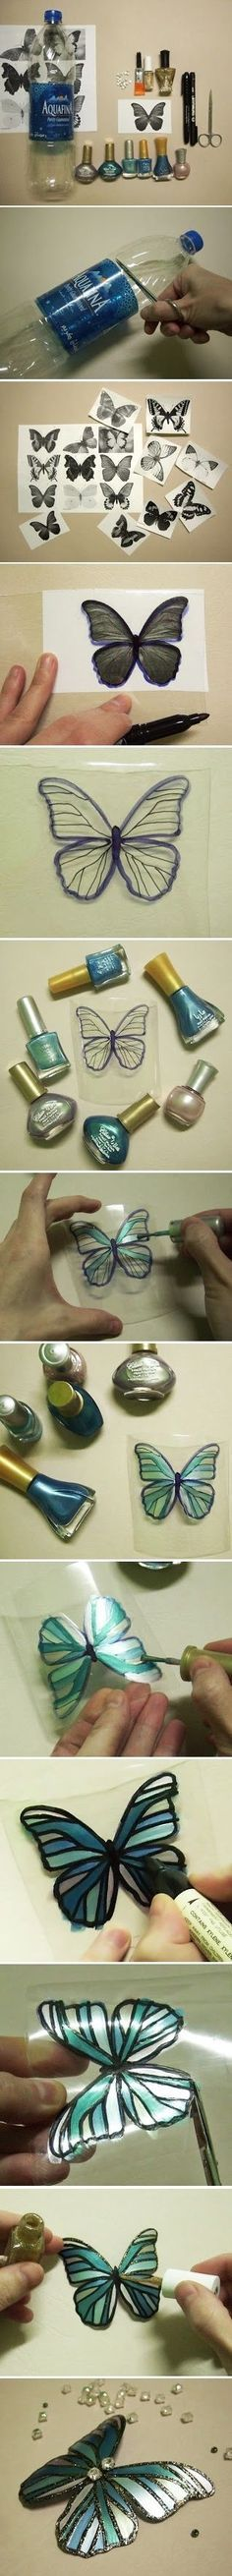 DIY Butterflies made from plastic water bottles, nail polish